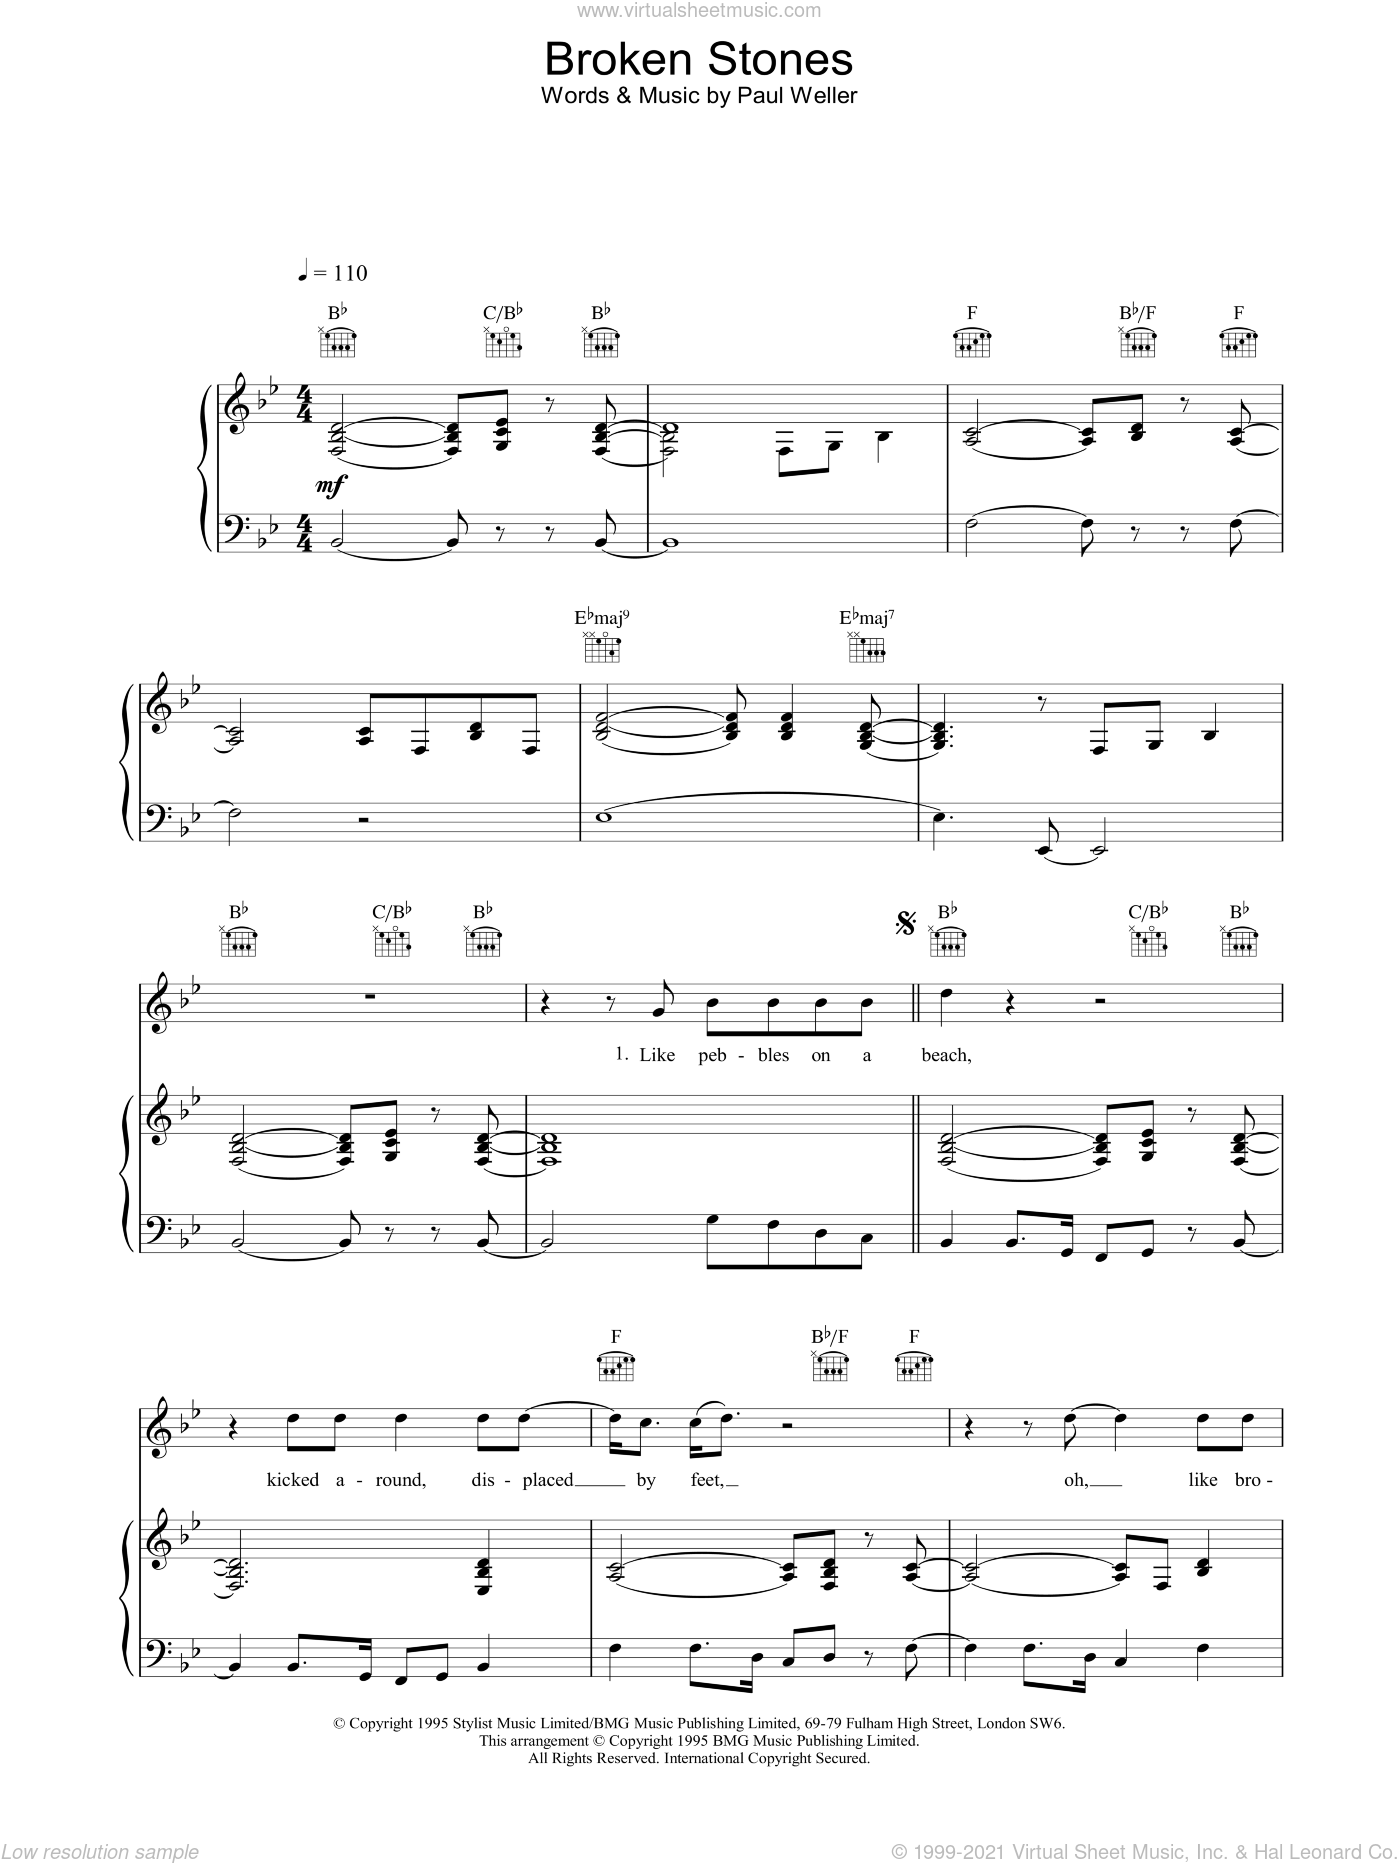 Broken Stones sheet music for voice, piano or guitar by Paul Weller. Score Image Preview.